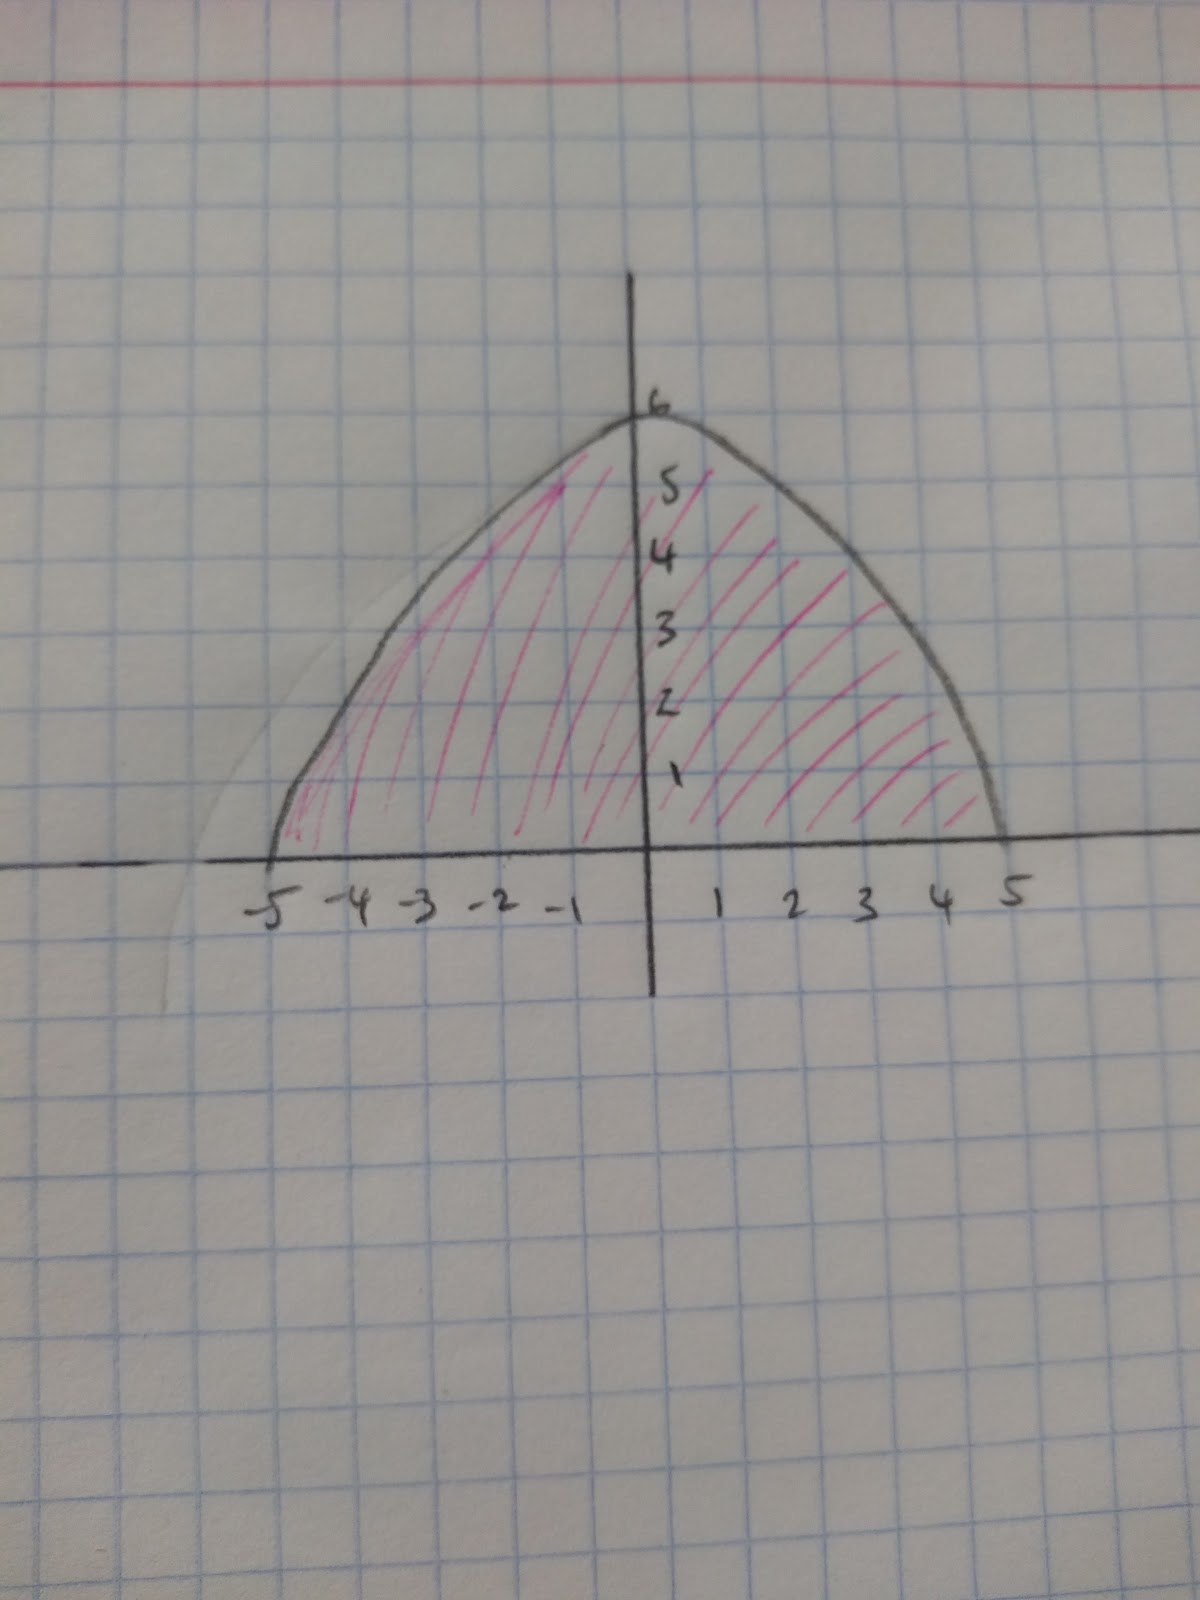 Calculating and Estimating Gradients of Graphs